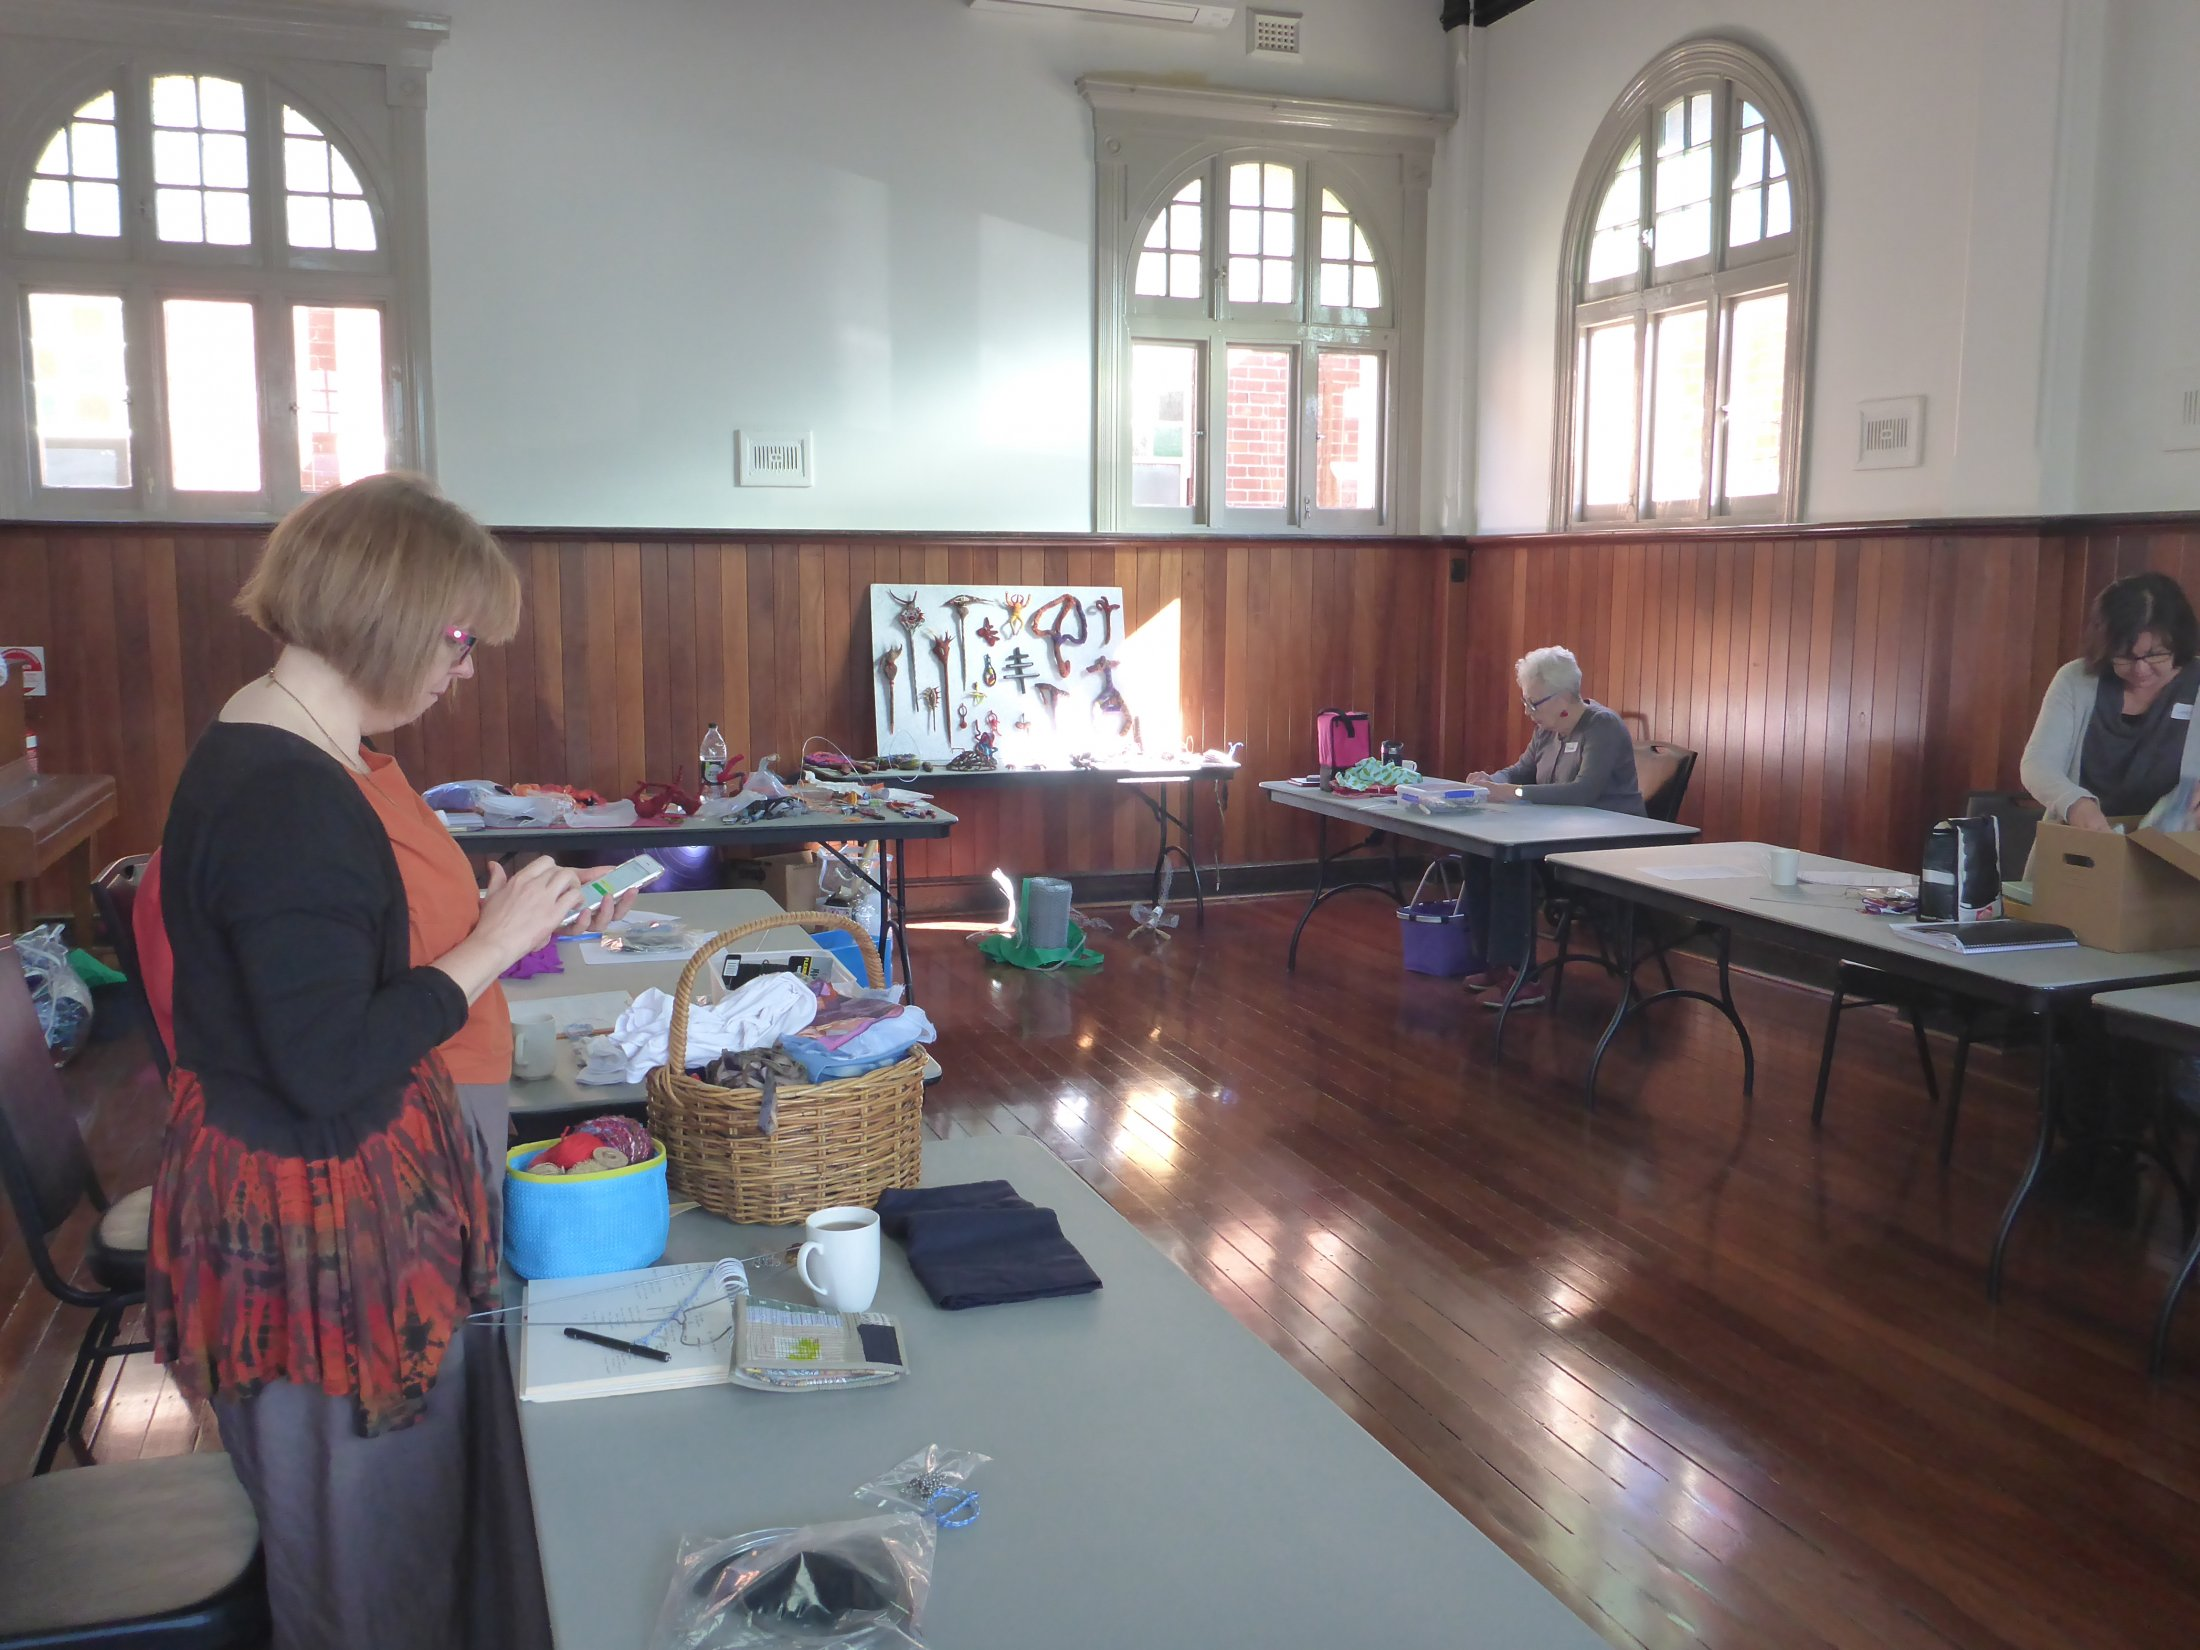 Participants at a workshop on textiles and wire armatures. Location: North Perth Lesser Hall for WAFTA.